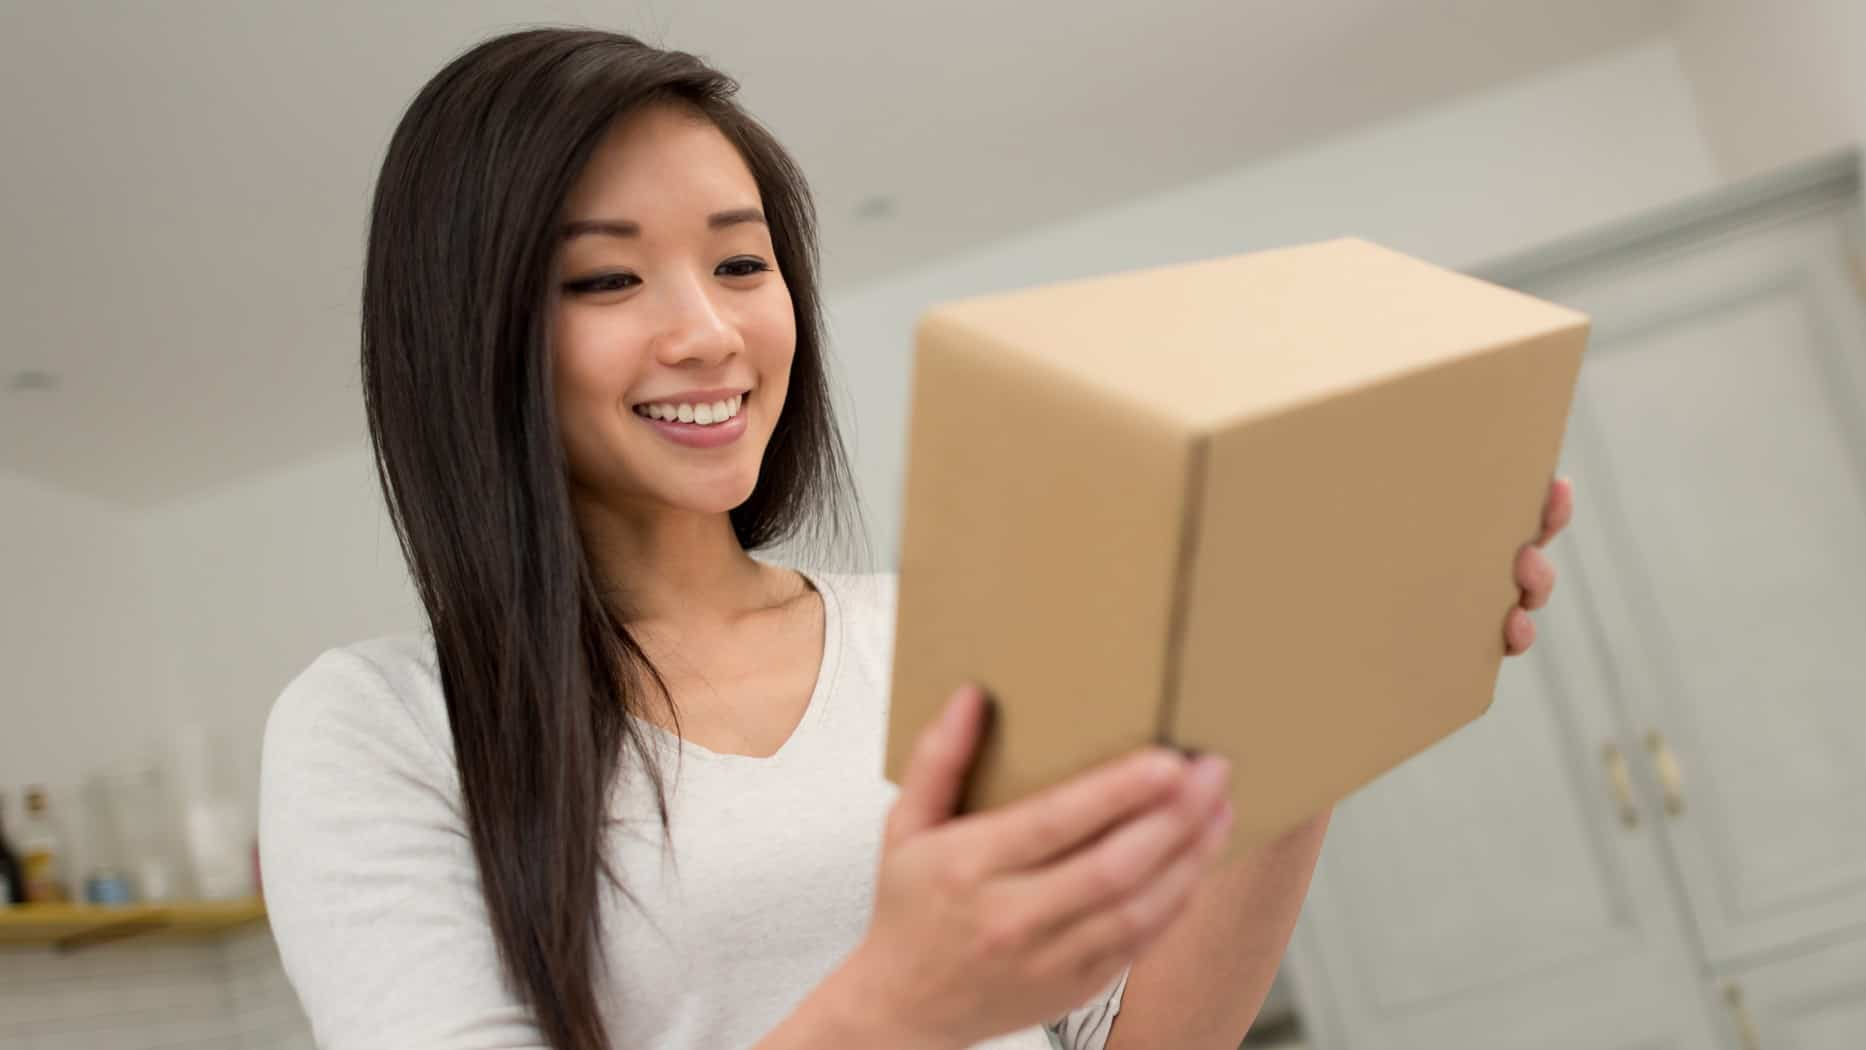 daigou asx 200 shares represented by woman receiving brown package in the mail